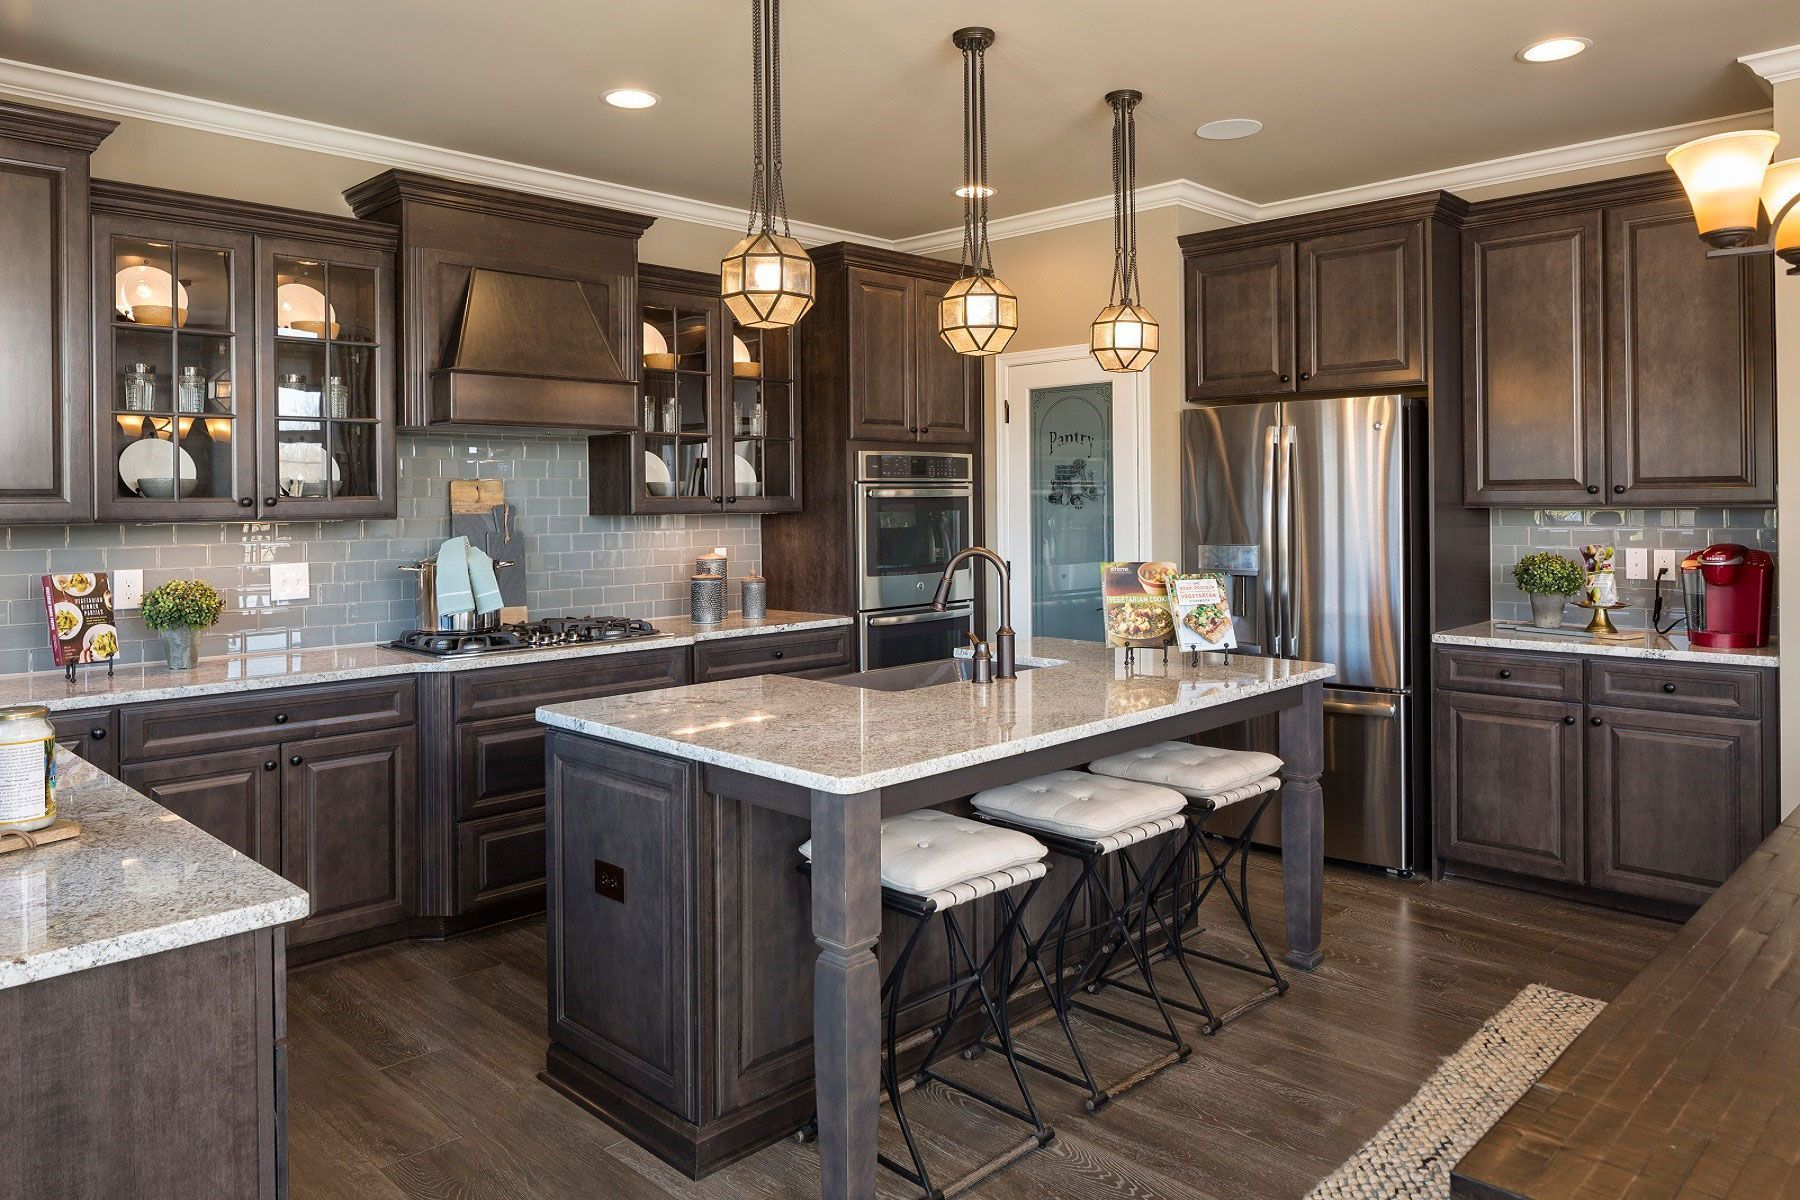 I Think This Is Aristokraft Flagstone Stain Darkkitchencabinets I Think Thi I Think This In 2020 Home Decor Kitchen Home Kitchens Kitchen Remodel Small